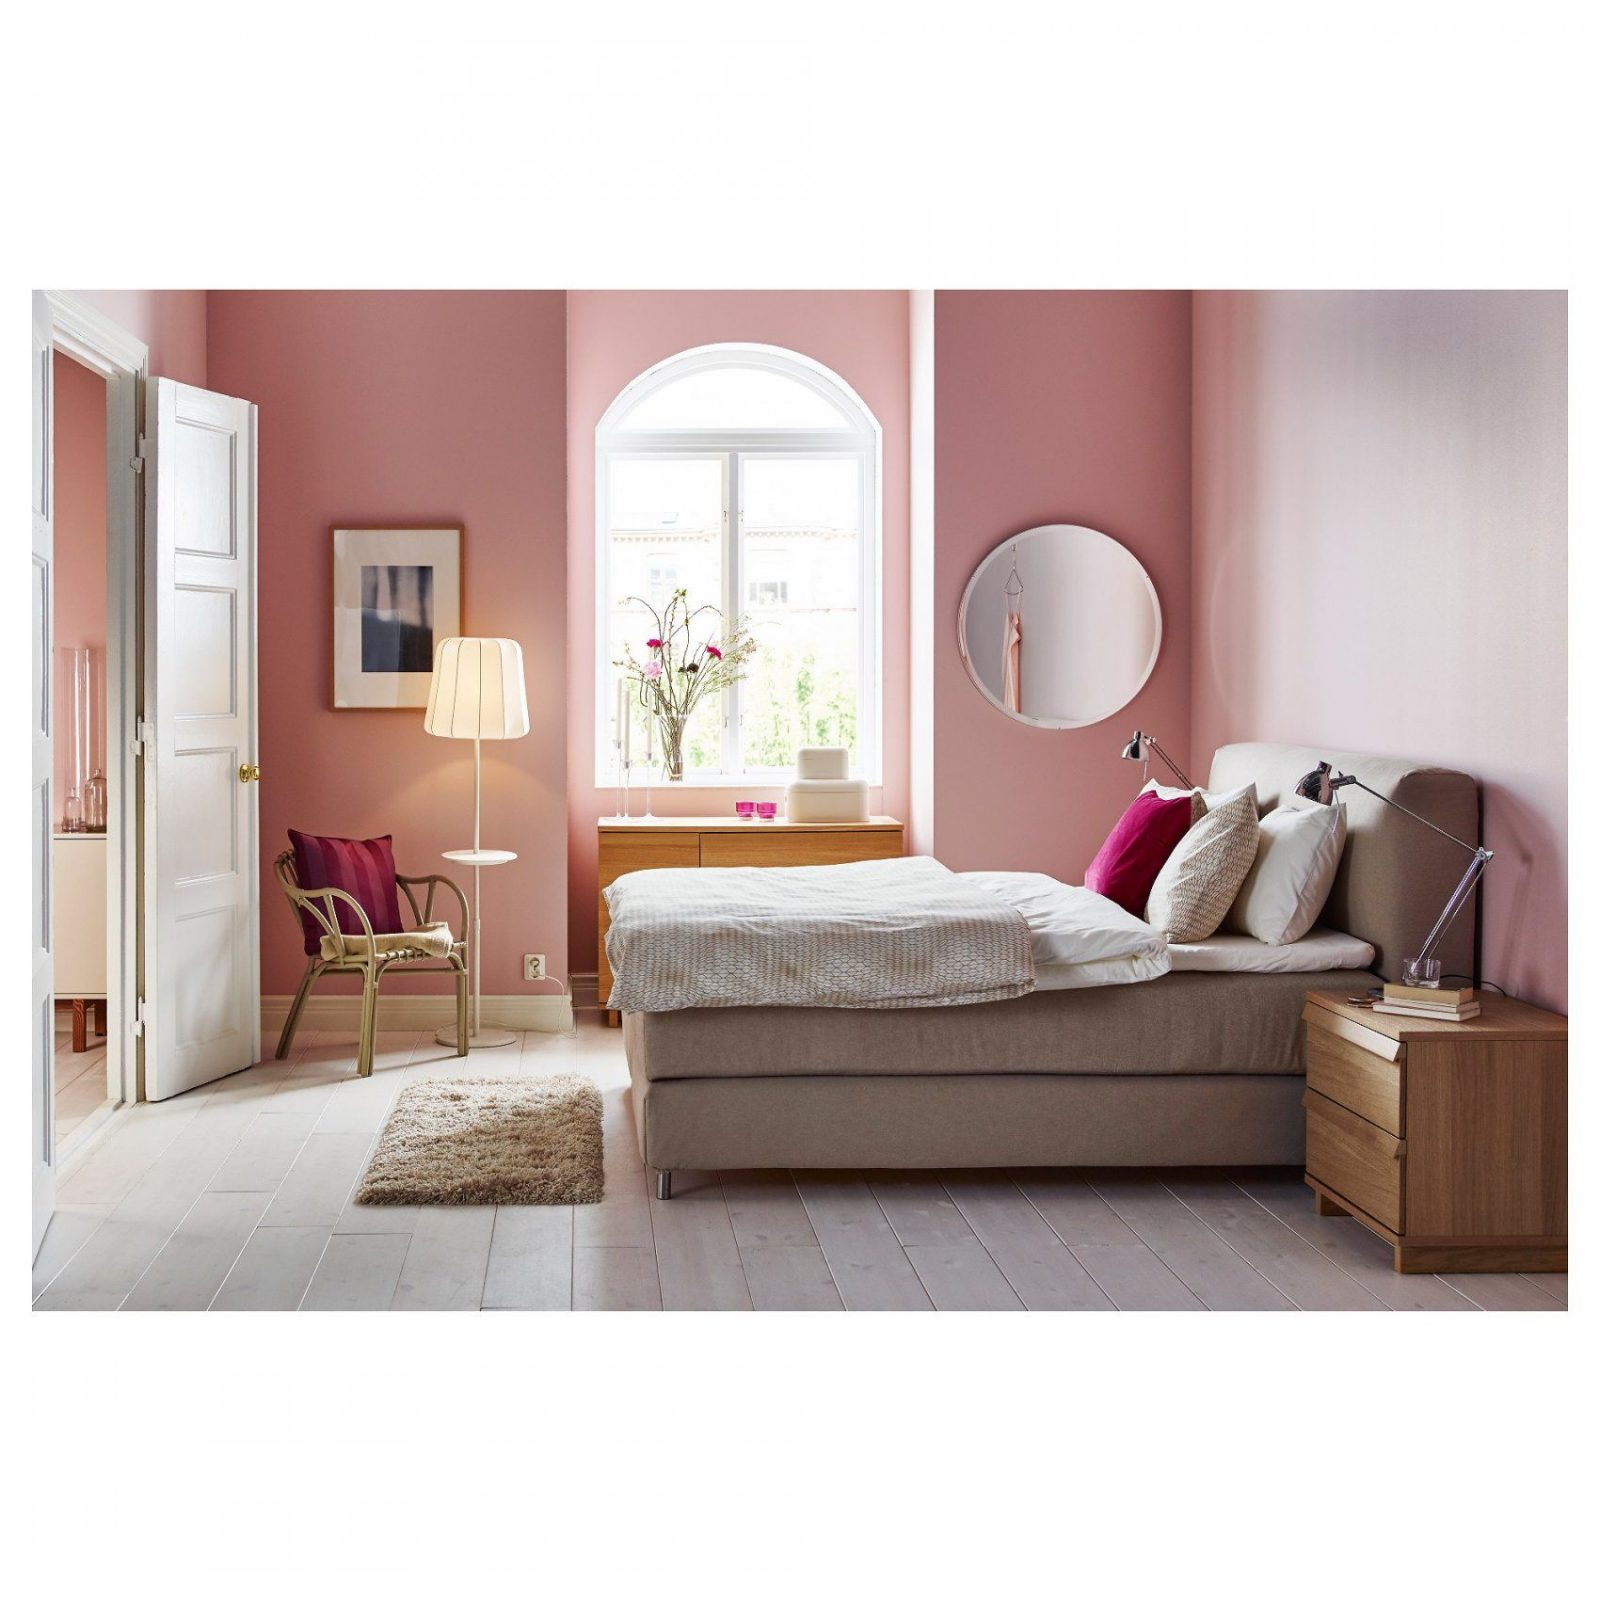 mj lvik boxspring h v g stevigtuddal beige 160x200 cm ikea von ikea boxspringbett mj lvik test. Black Bedroom Furniture Sets. Home Design Ideas